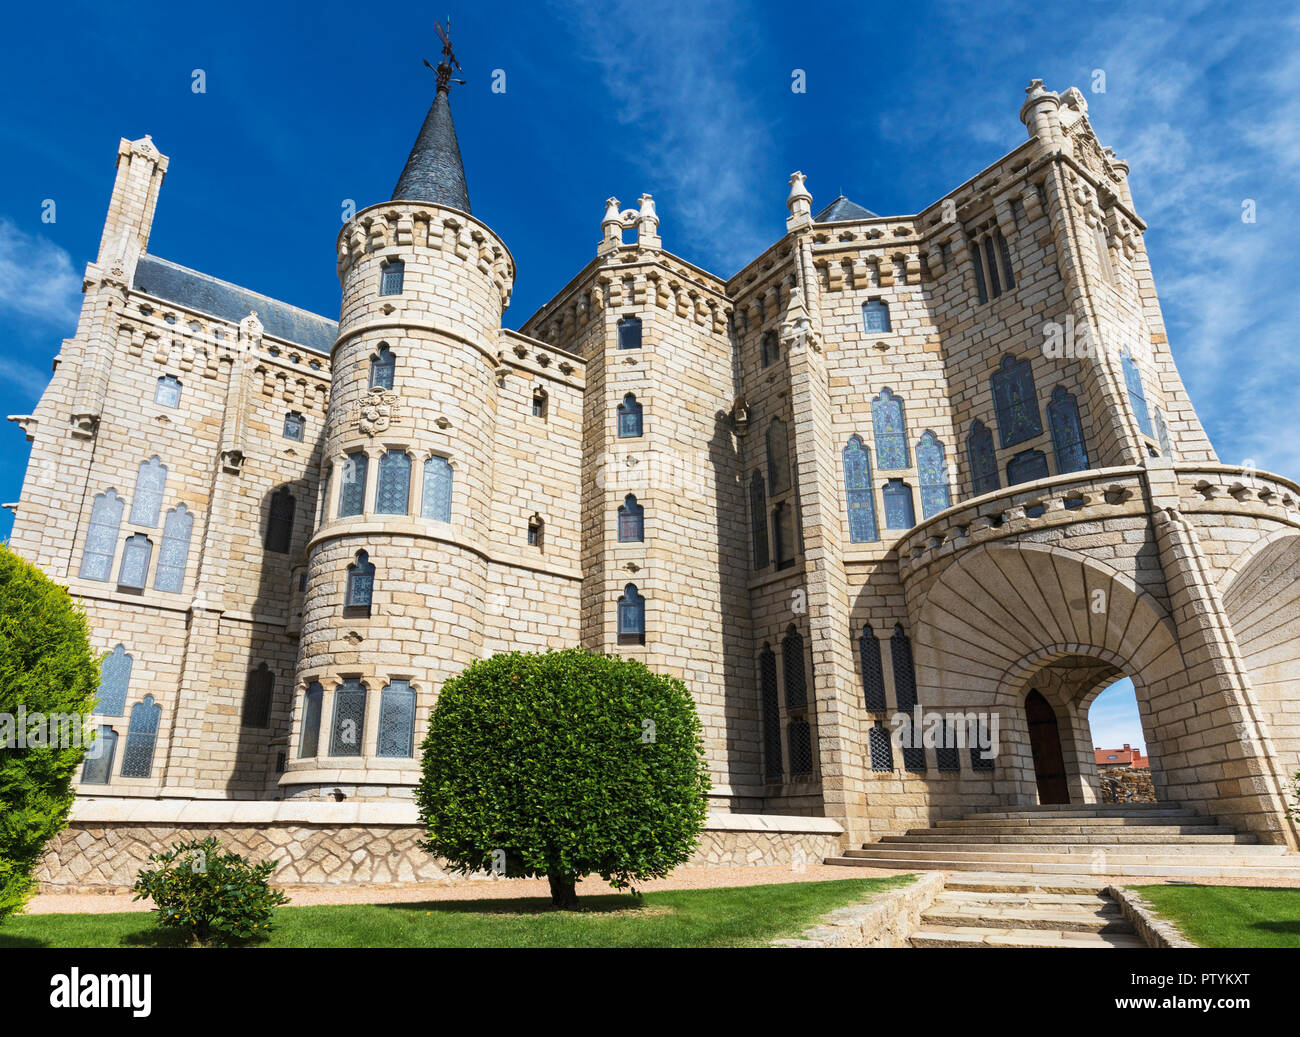 Astorga, Leon Province, Castile and Leon, Spain.  The Episcopal Palace, Palacio Espiscopal, designed by Catalan architect Antoni Gaudi.  Today the Pal - Stock Image